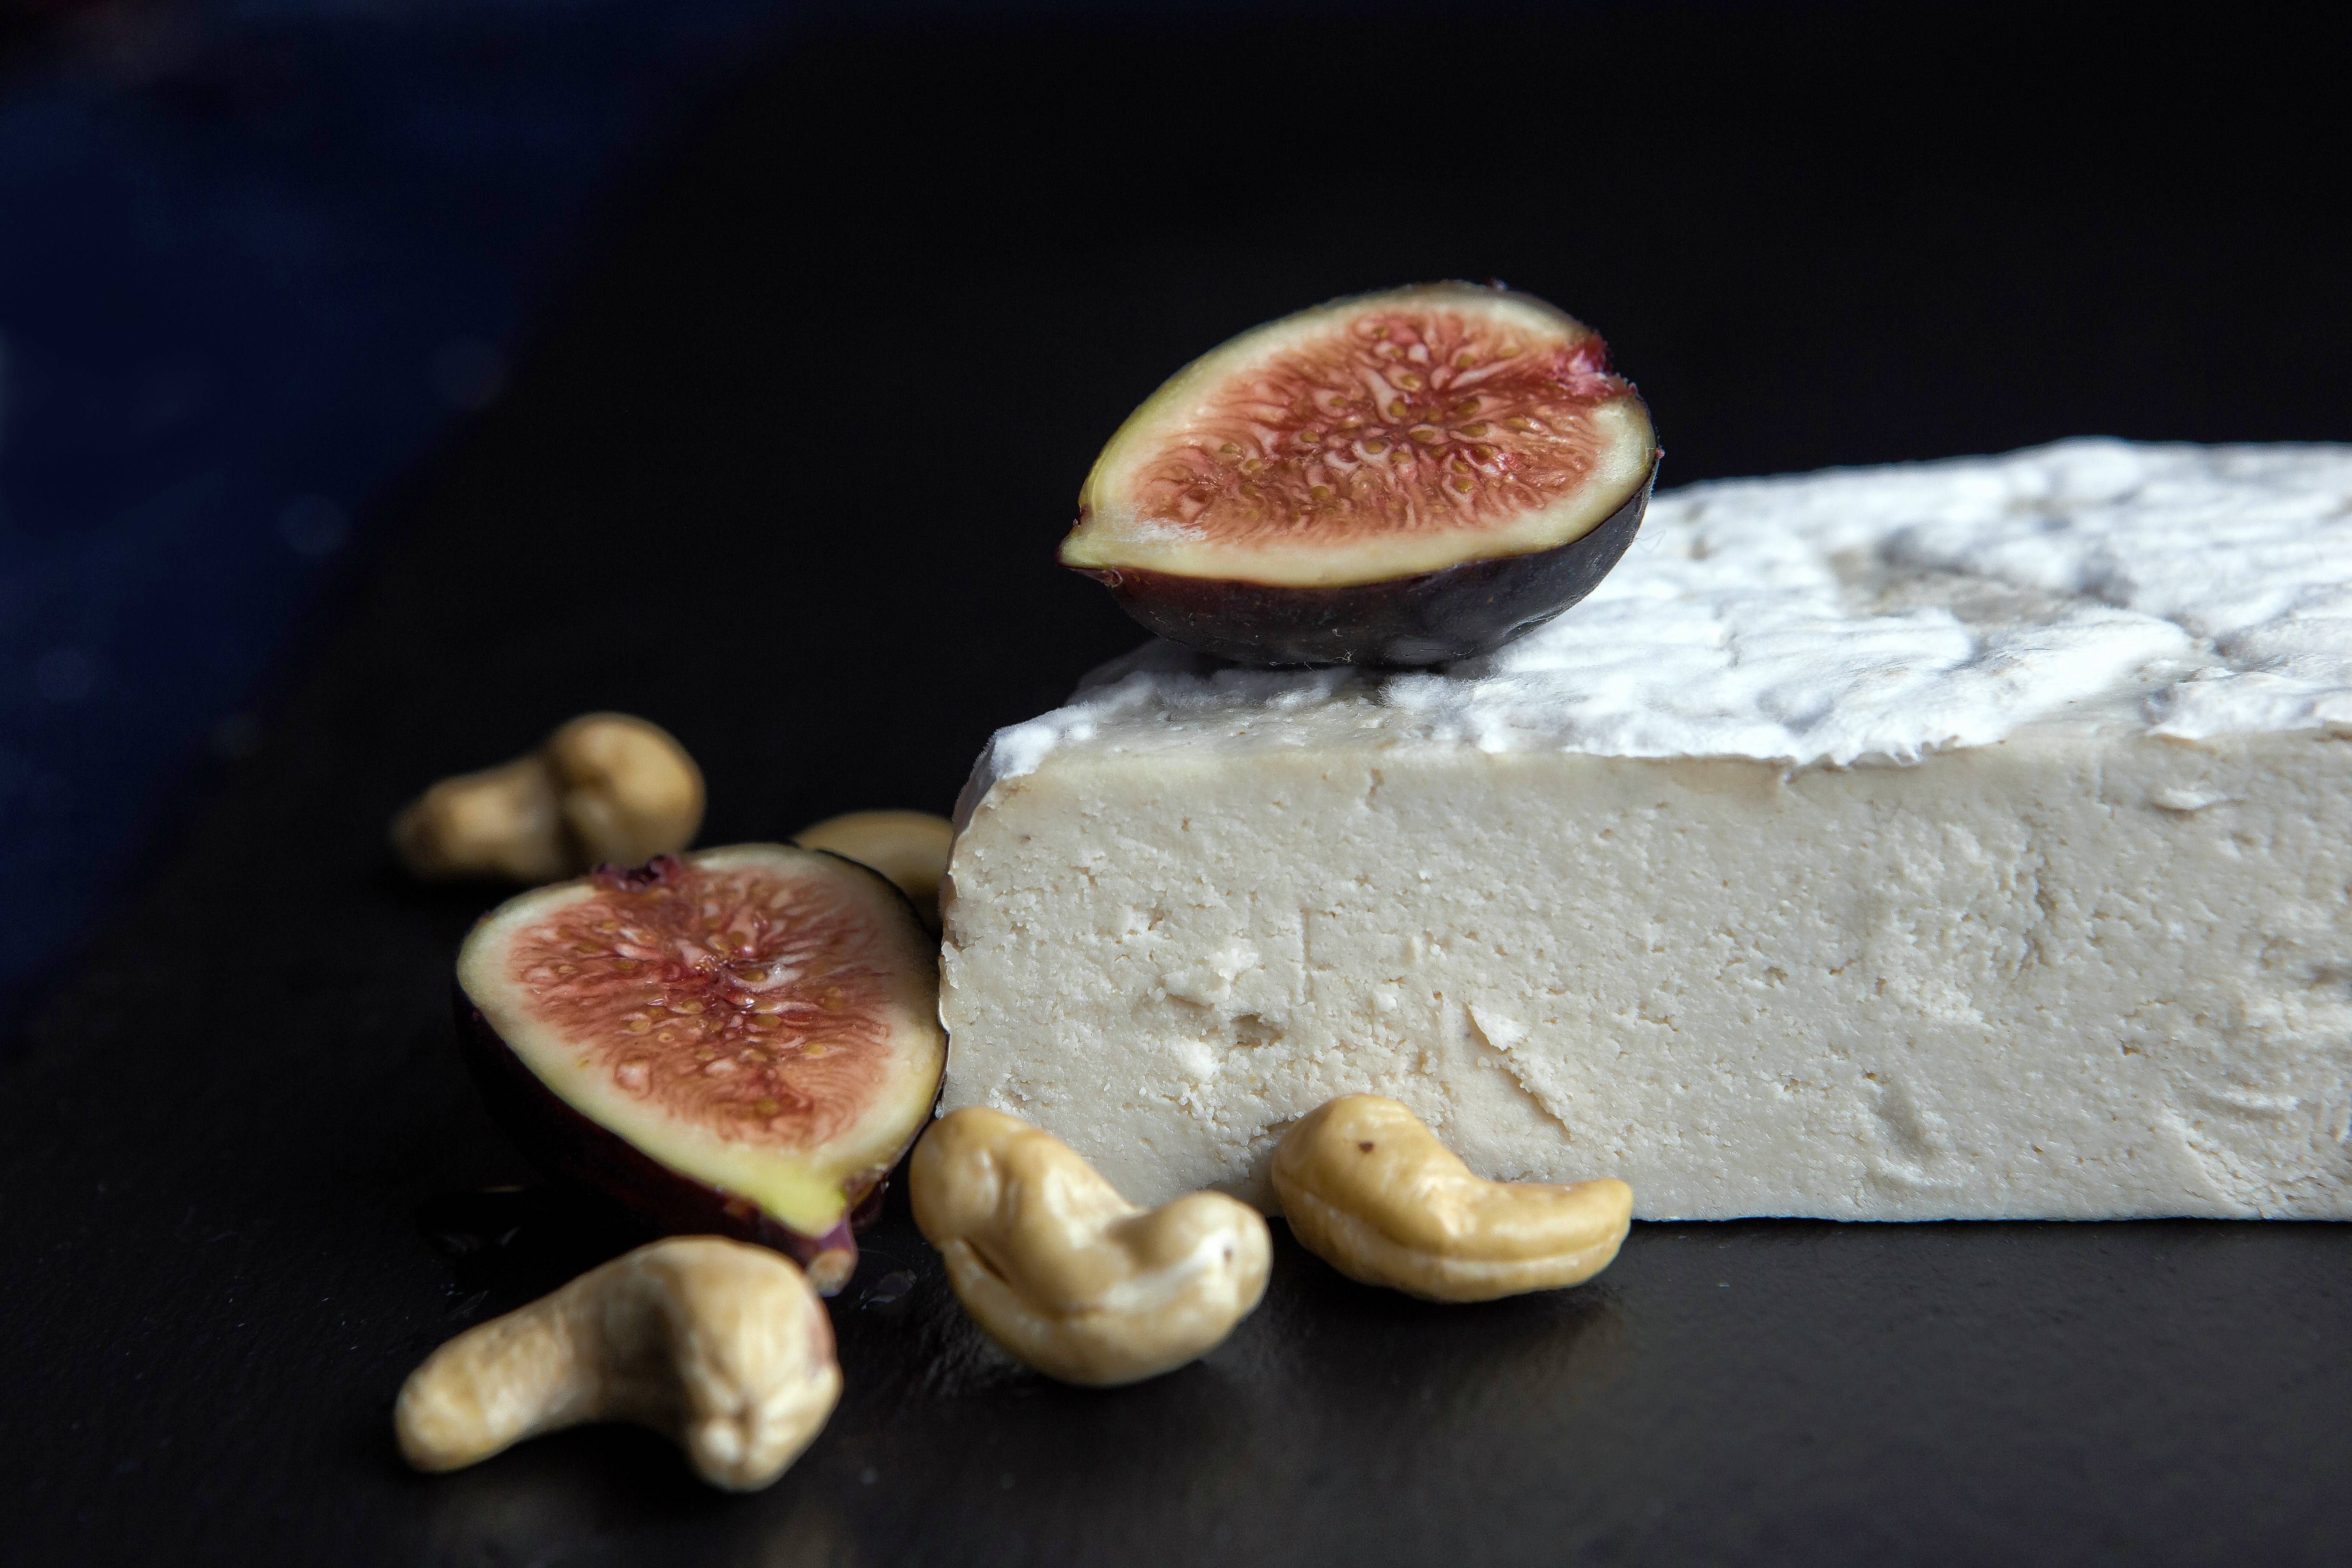 Vegan Aged Camembert Cheese. By using traditional cheese-making practices, including the addition of penicillium candidum — the agent that allows the vegan Camembert to grow a signature coating of mold — this nut-based version is surprisingly close to the original in flavor and appearance.